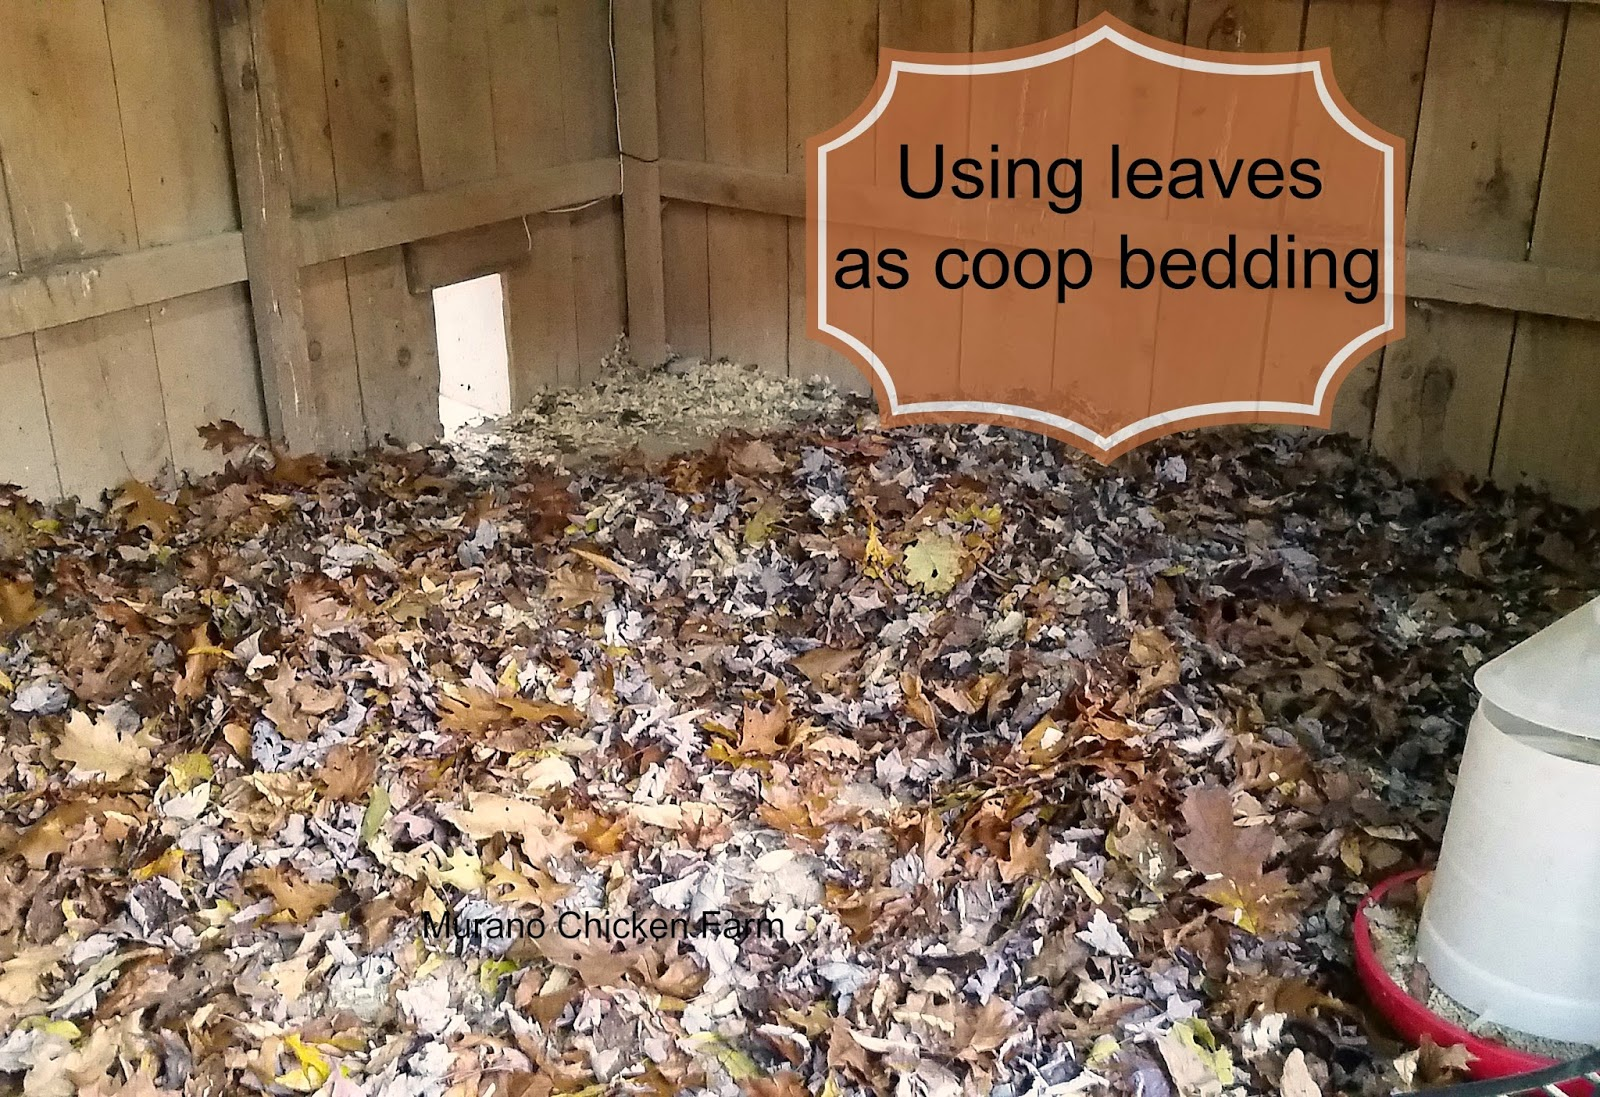 Murano Chicken Farm Using Leaves As Coop Bedding